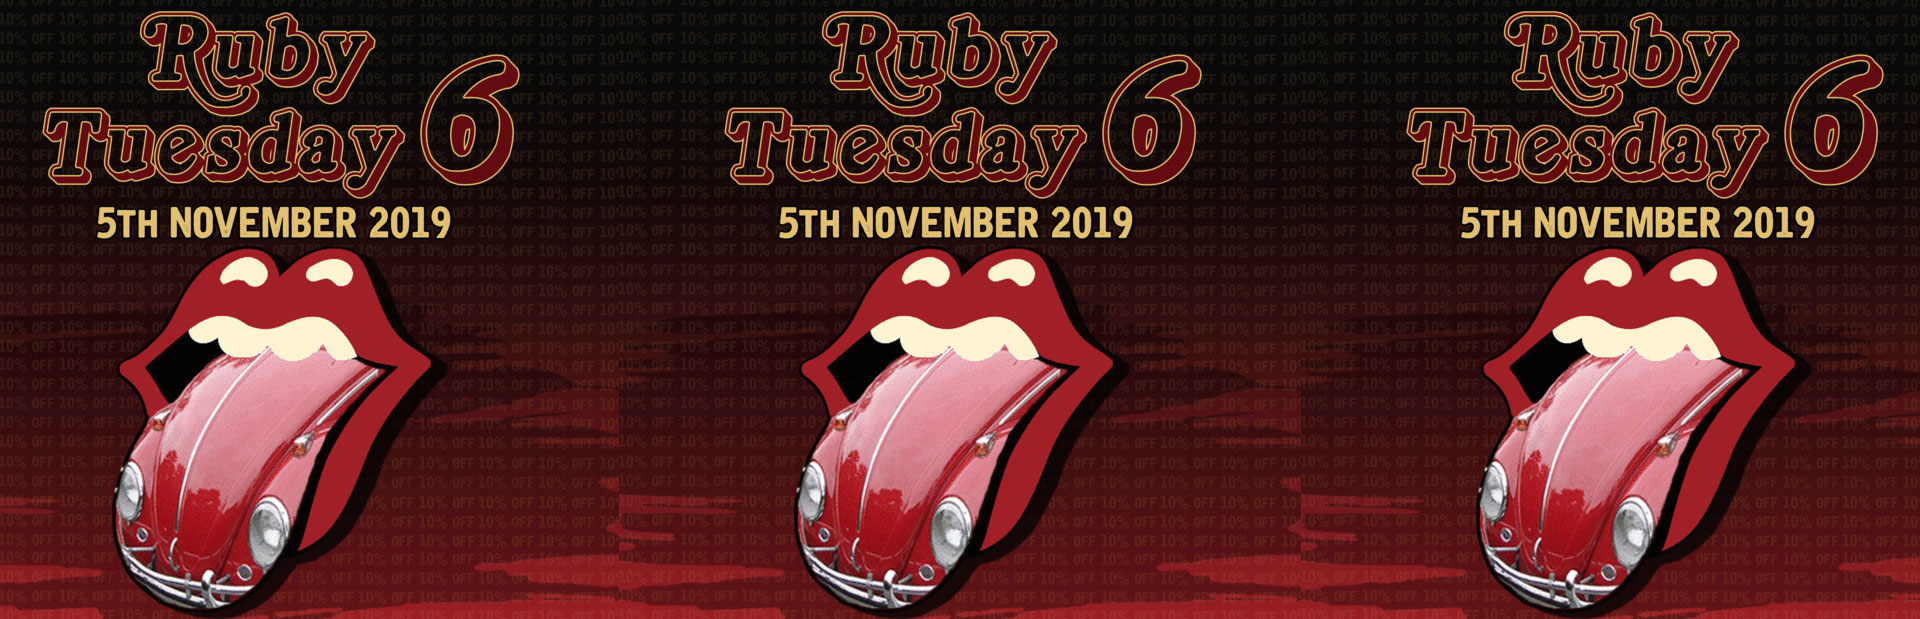 Ruby Tuesday 6